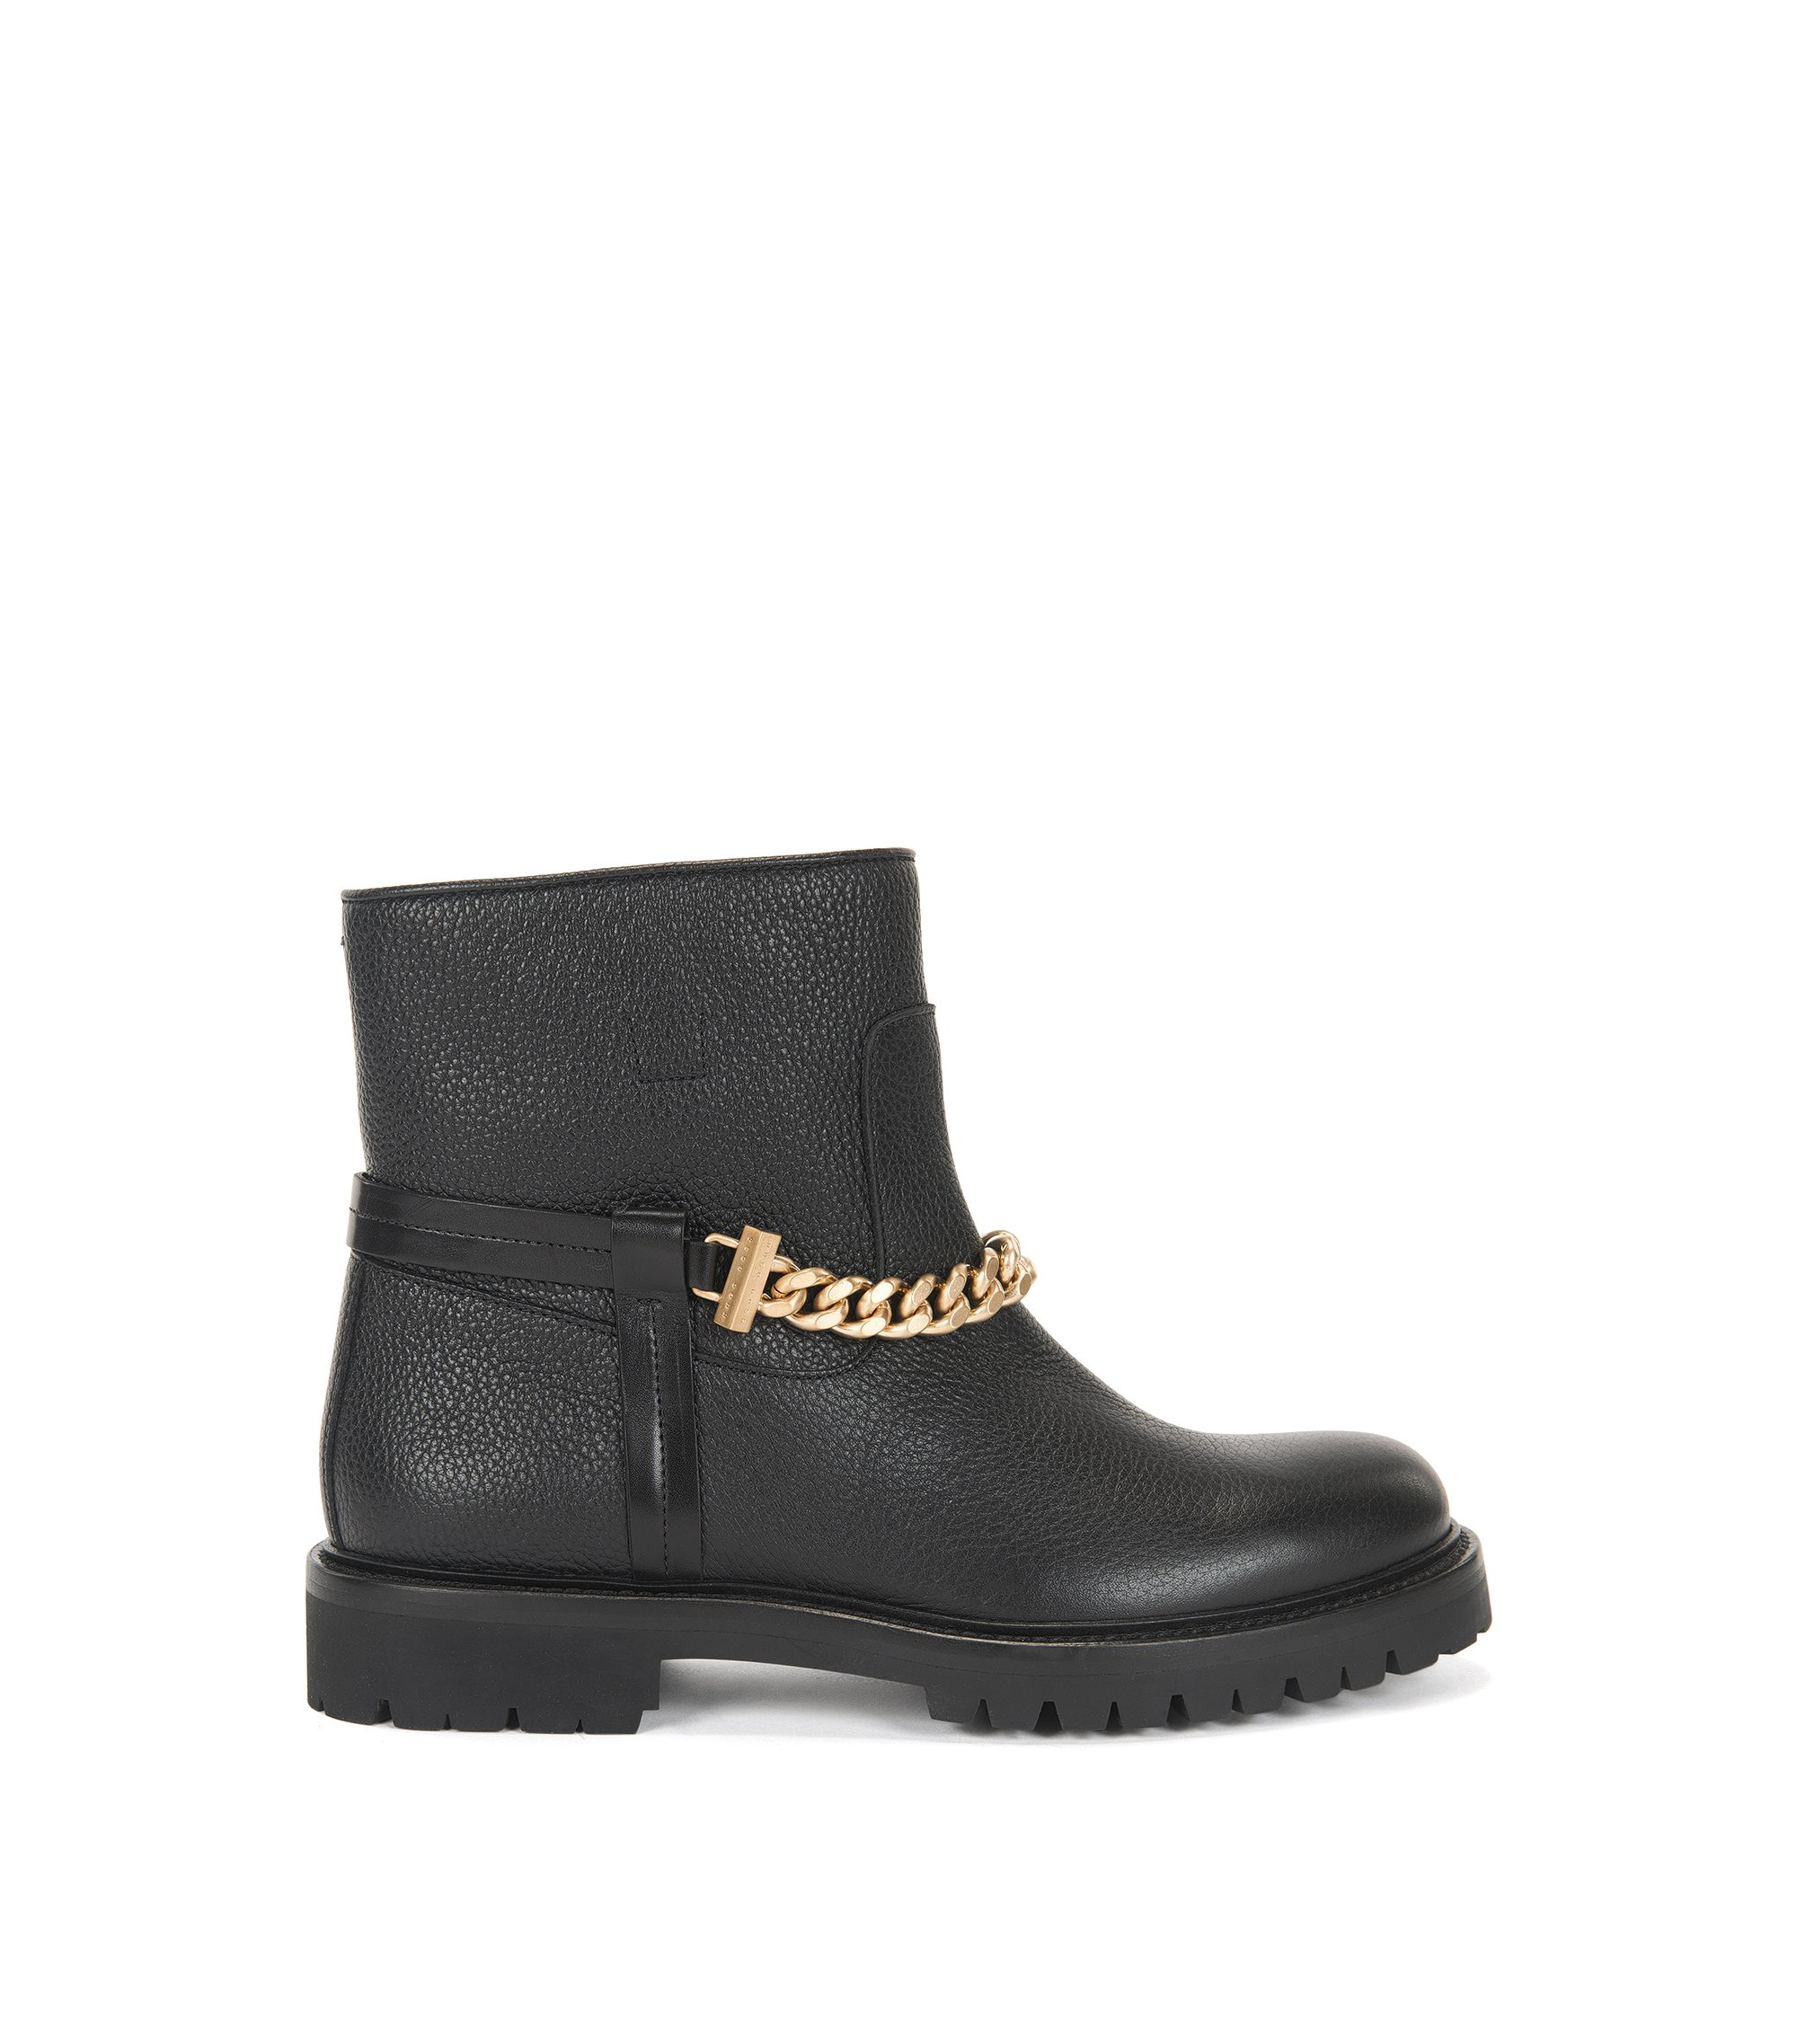 Leather boots with chain detail, Black